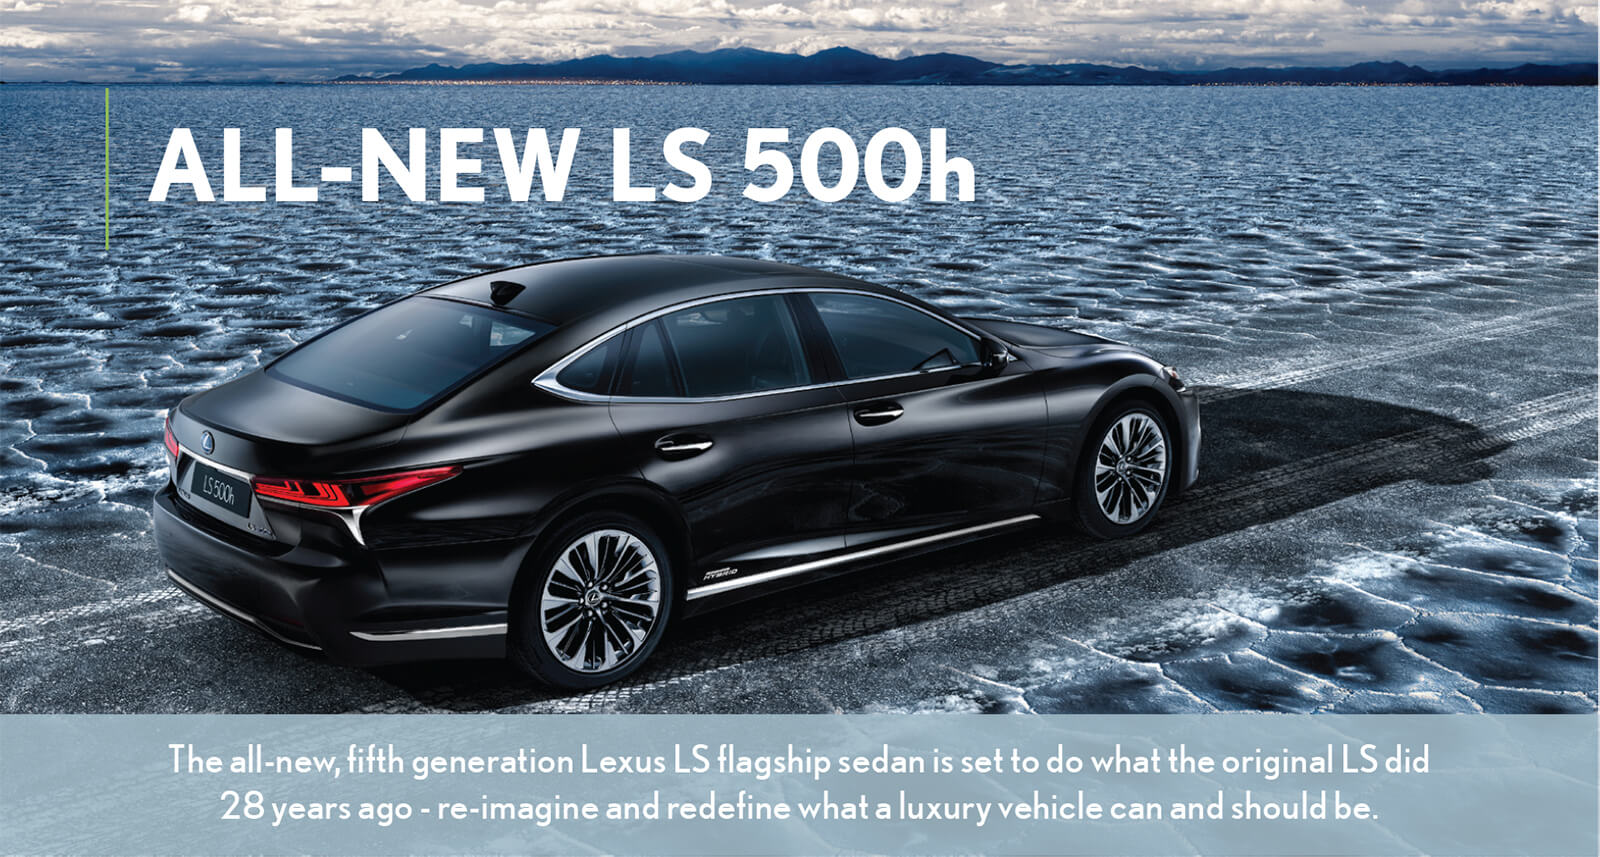 All New LS 500h